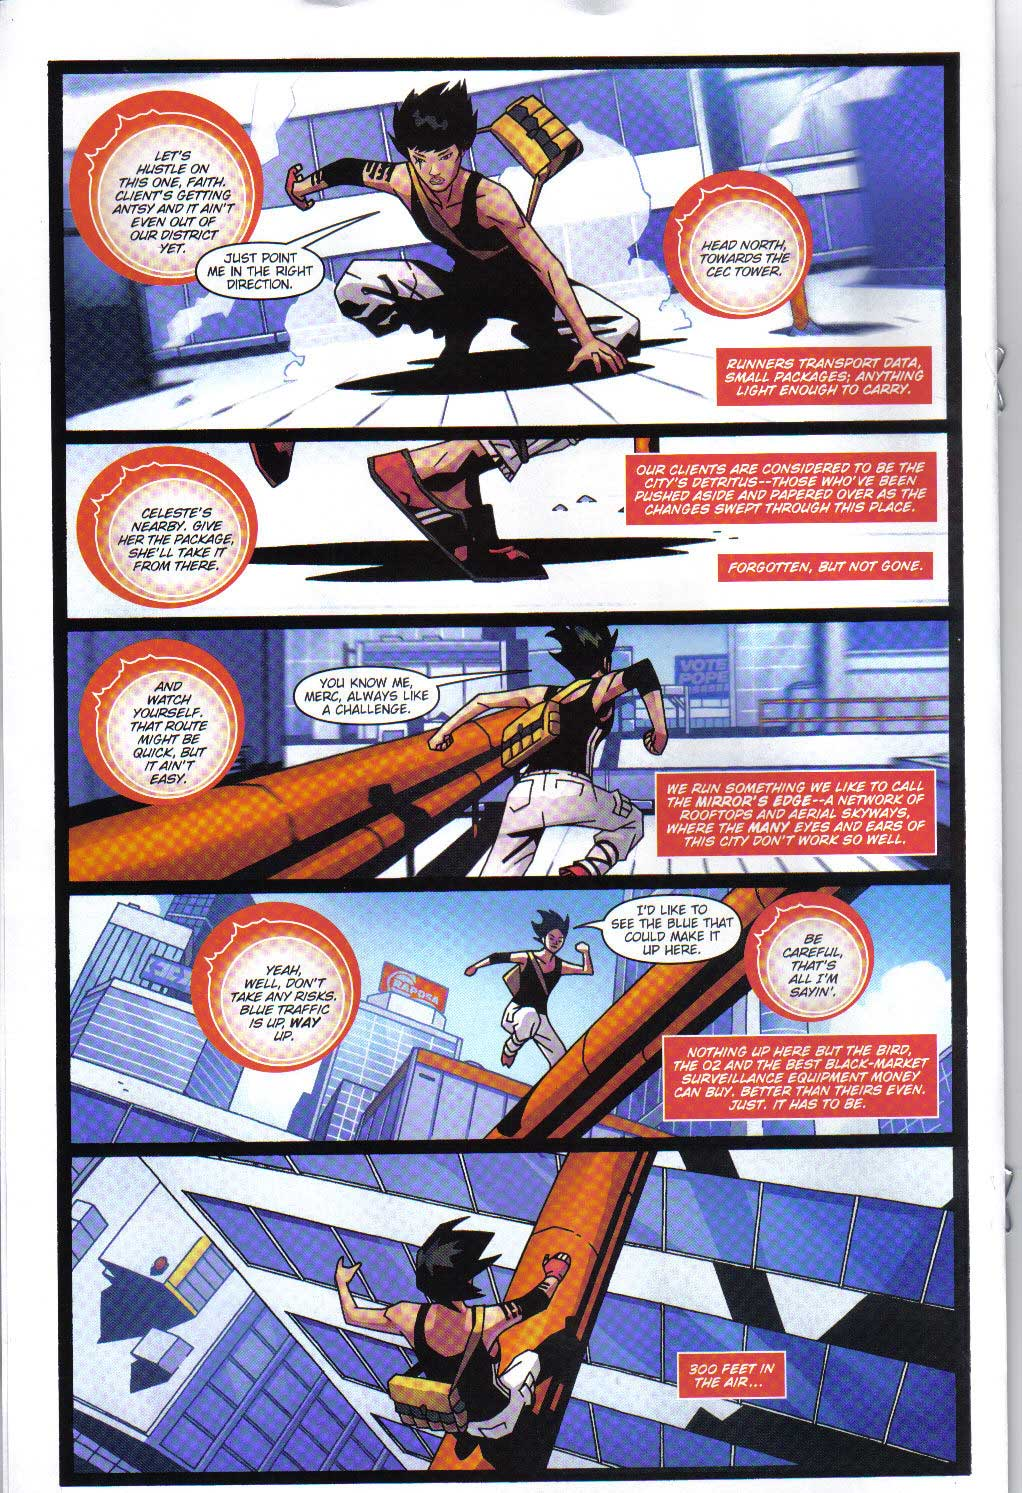 Comic Con 08 Mirror S Edge Comic 7 Page Preview Gematsu